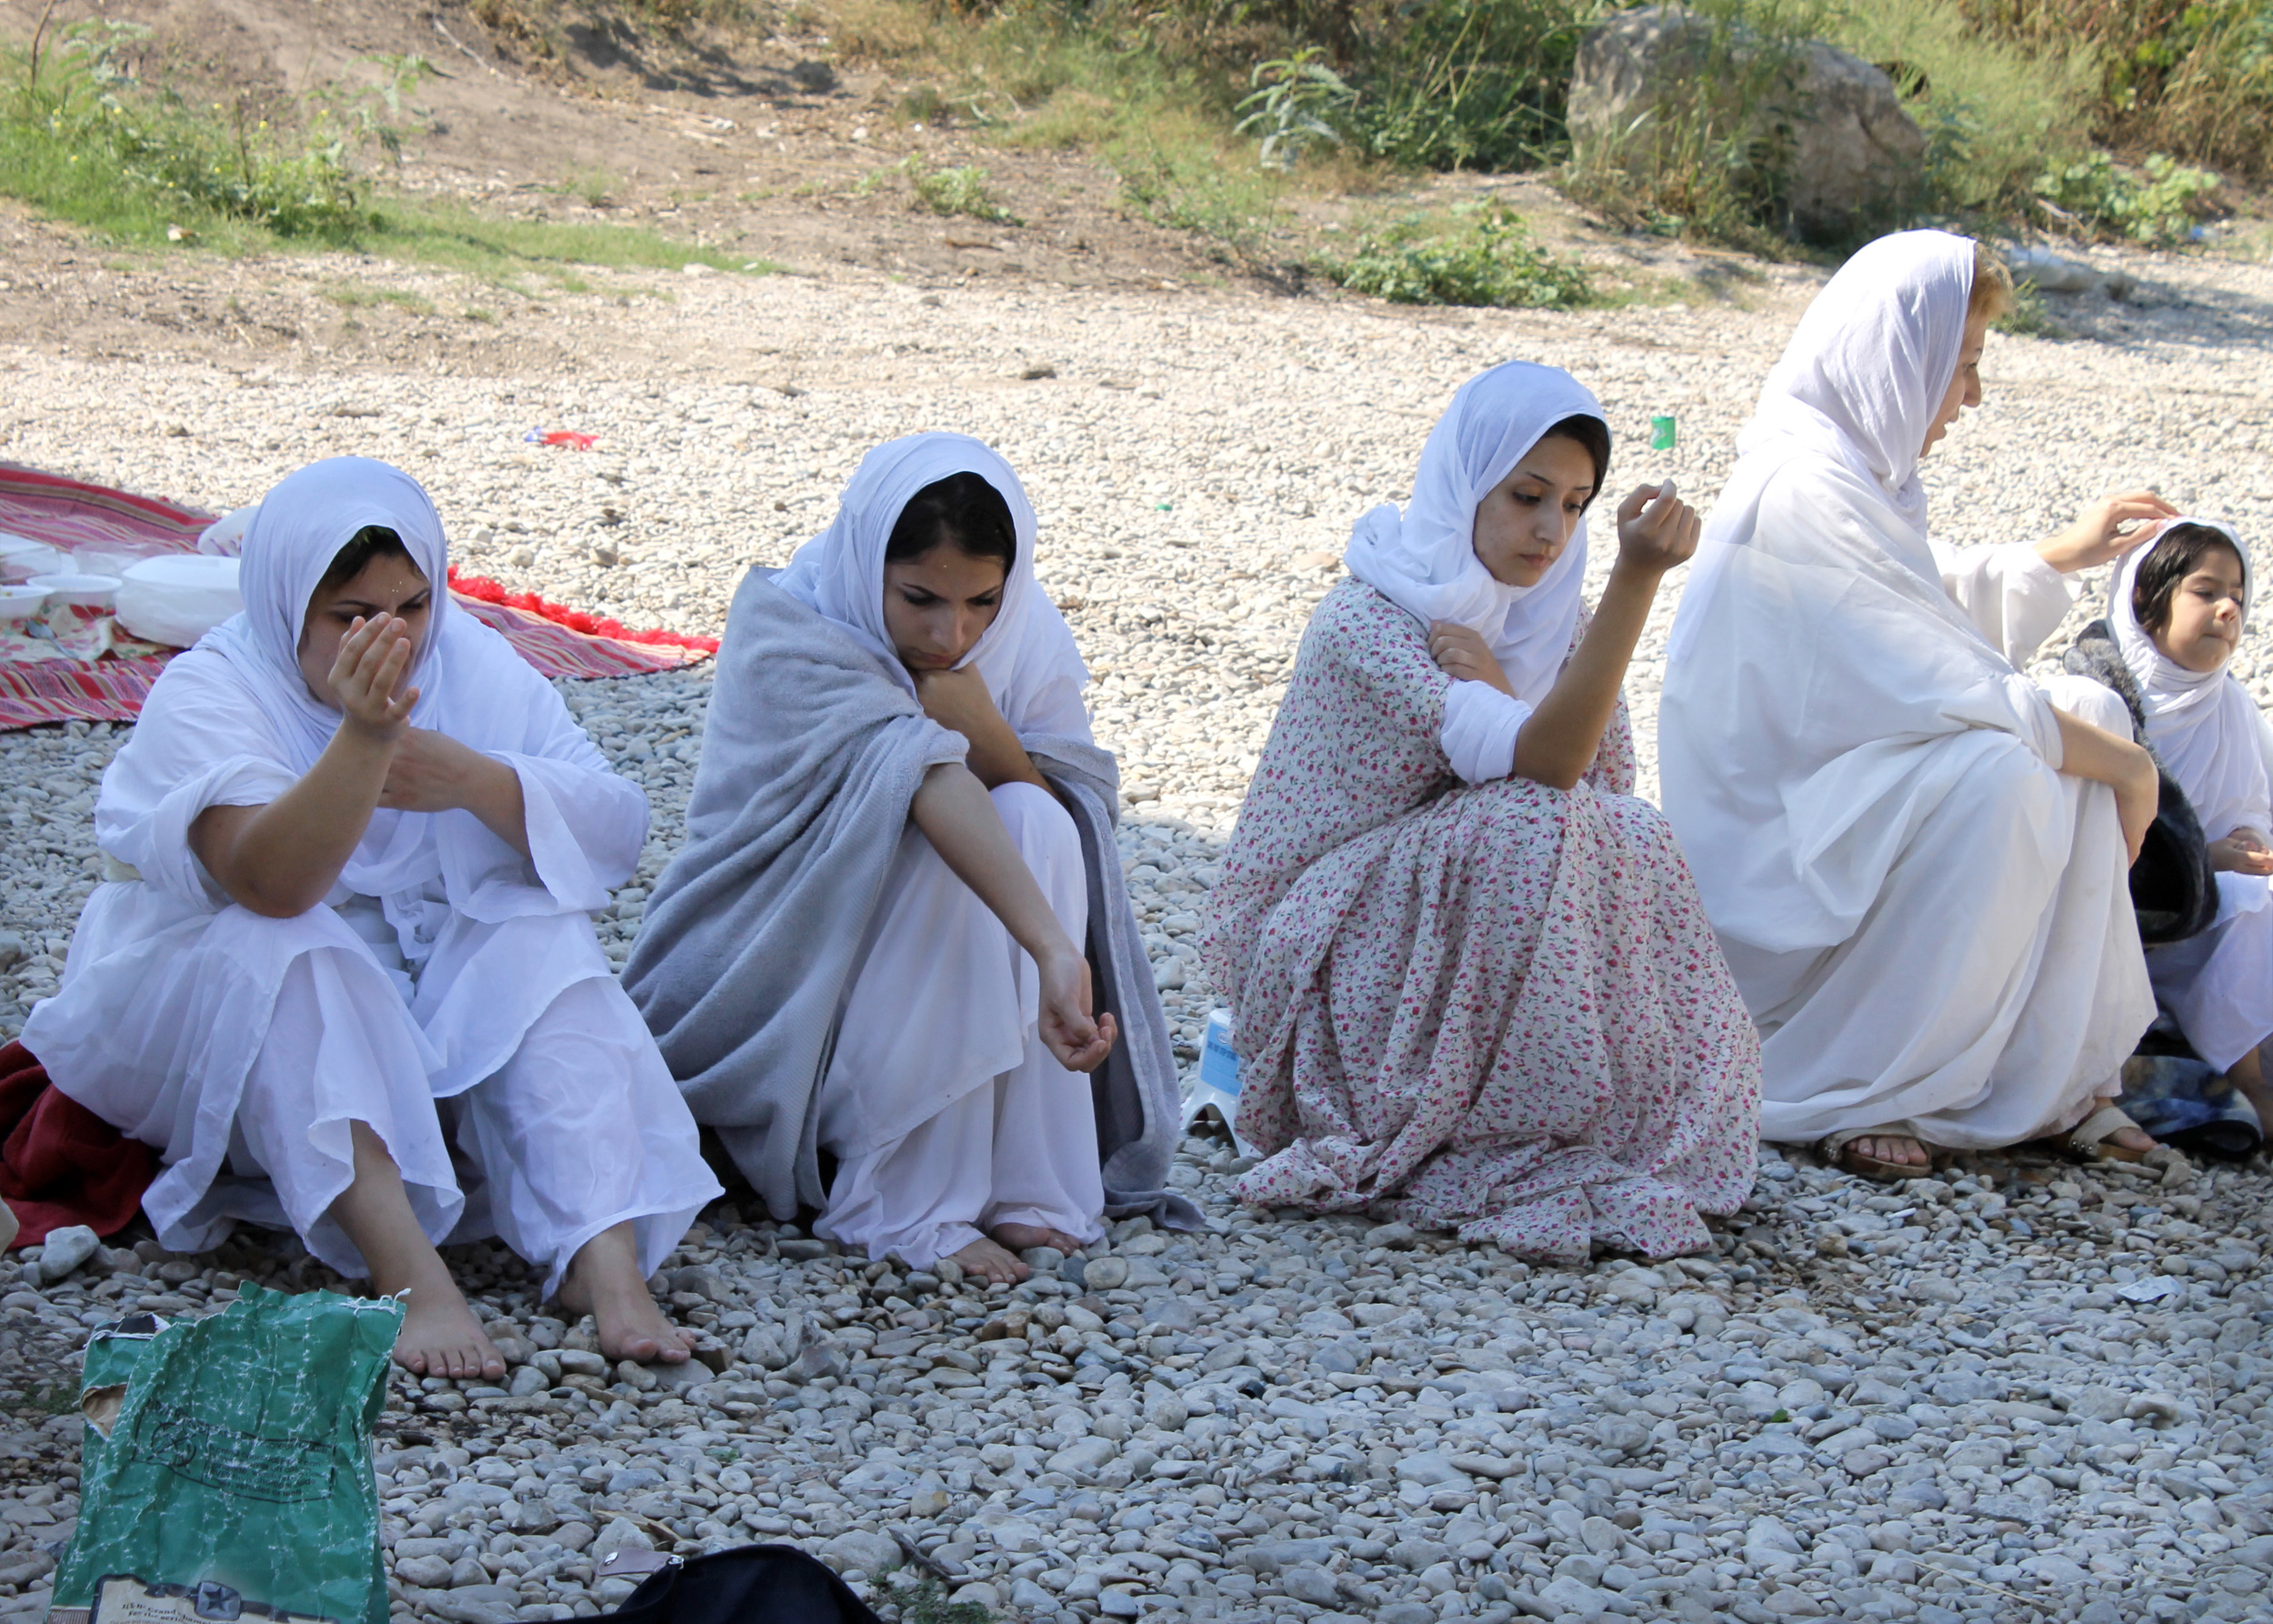 Community members wrap themselves in blankets to keep warm after the baptism is finished. Here, three generations of the same family sit together.